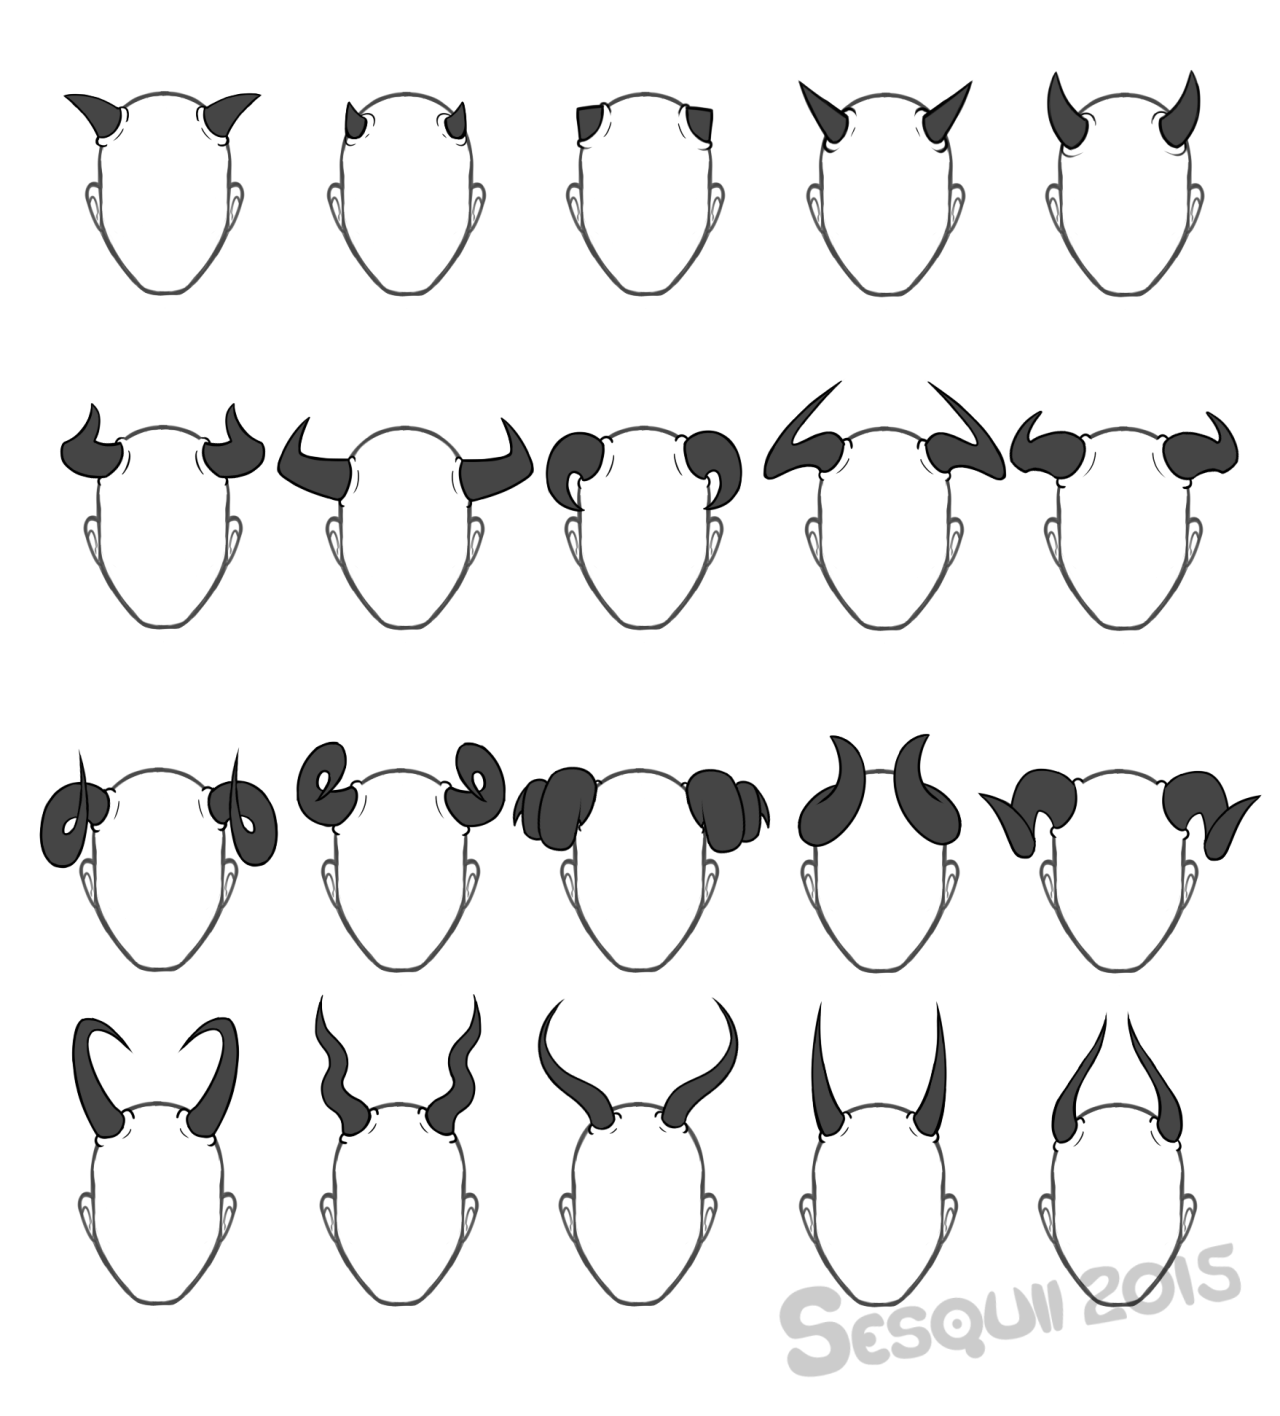 sesquii i really like horns so here have a set horns antlers larp costumelarp costume page 2 of 319 a place to rate and ideas about larp costumes anything that enhances the look of the character including